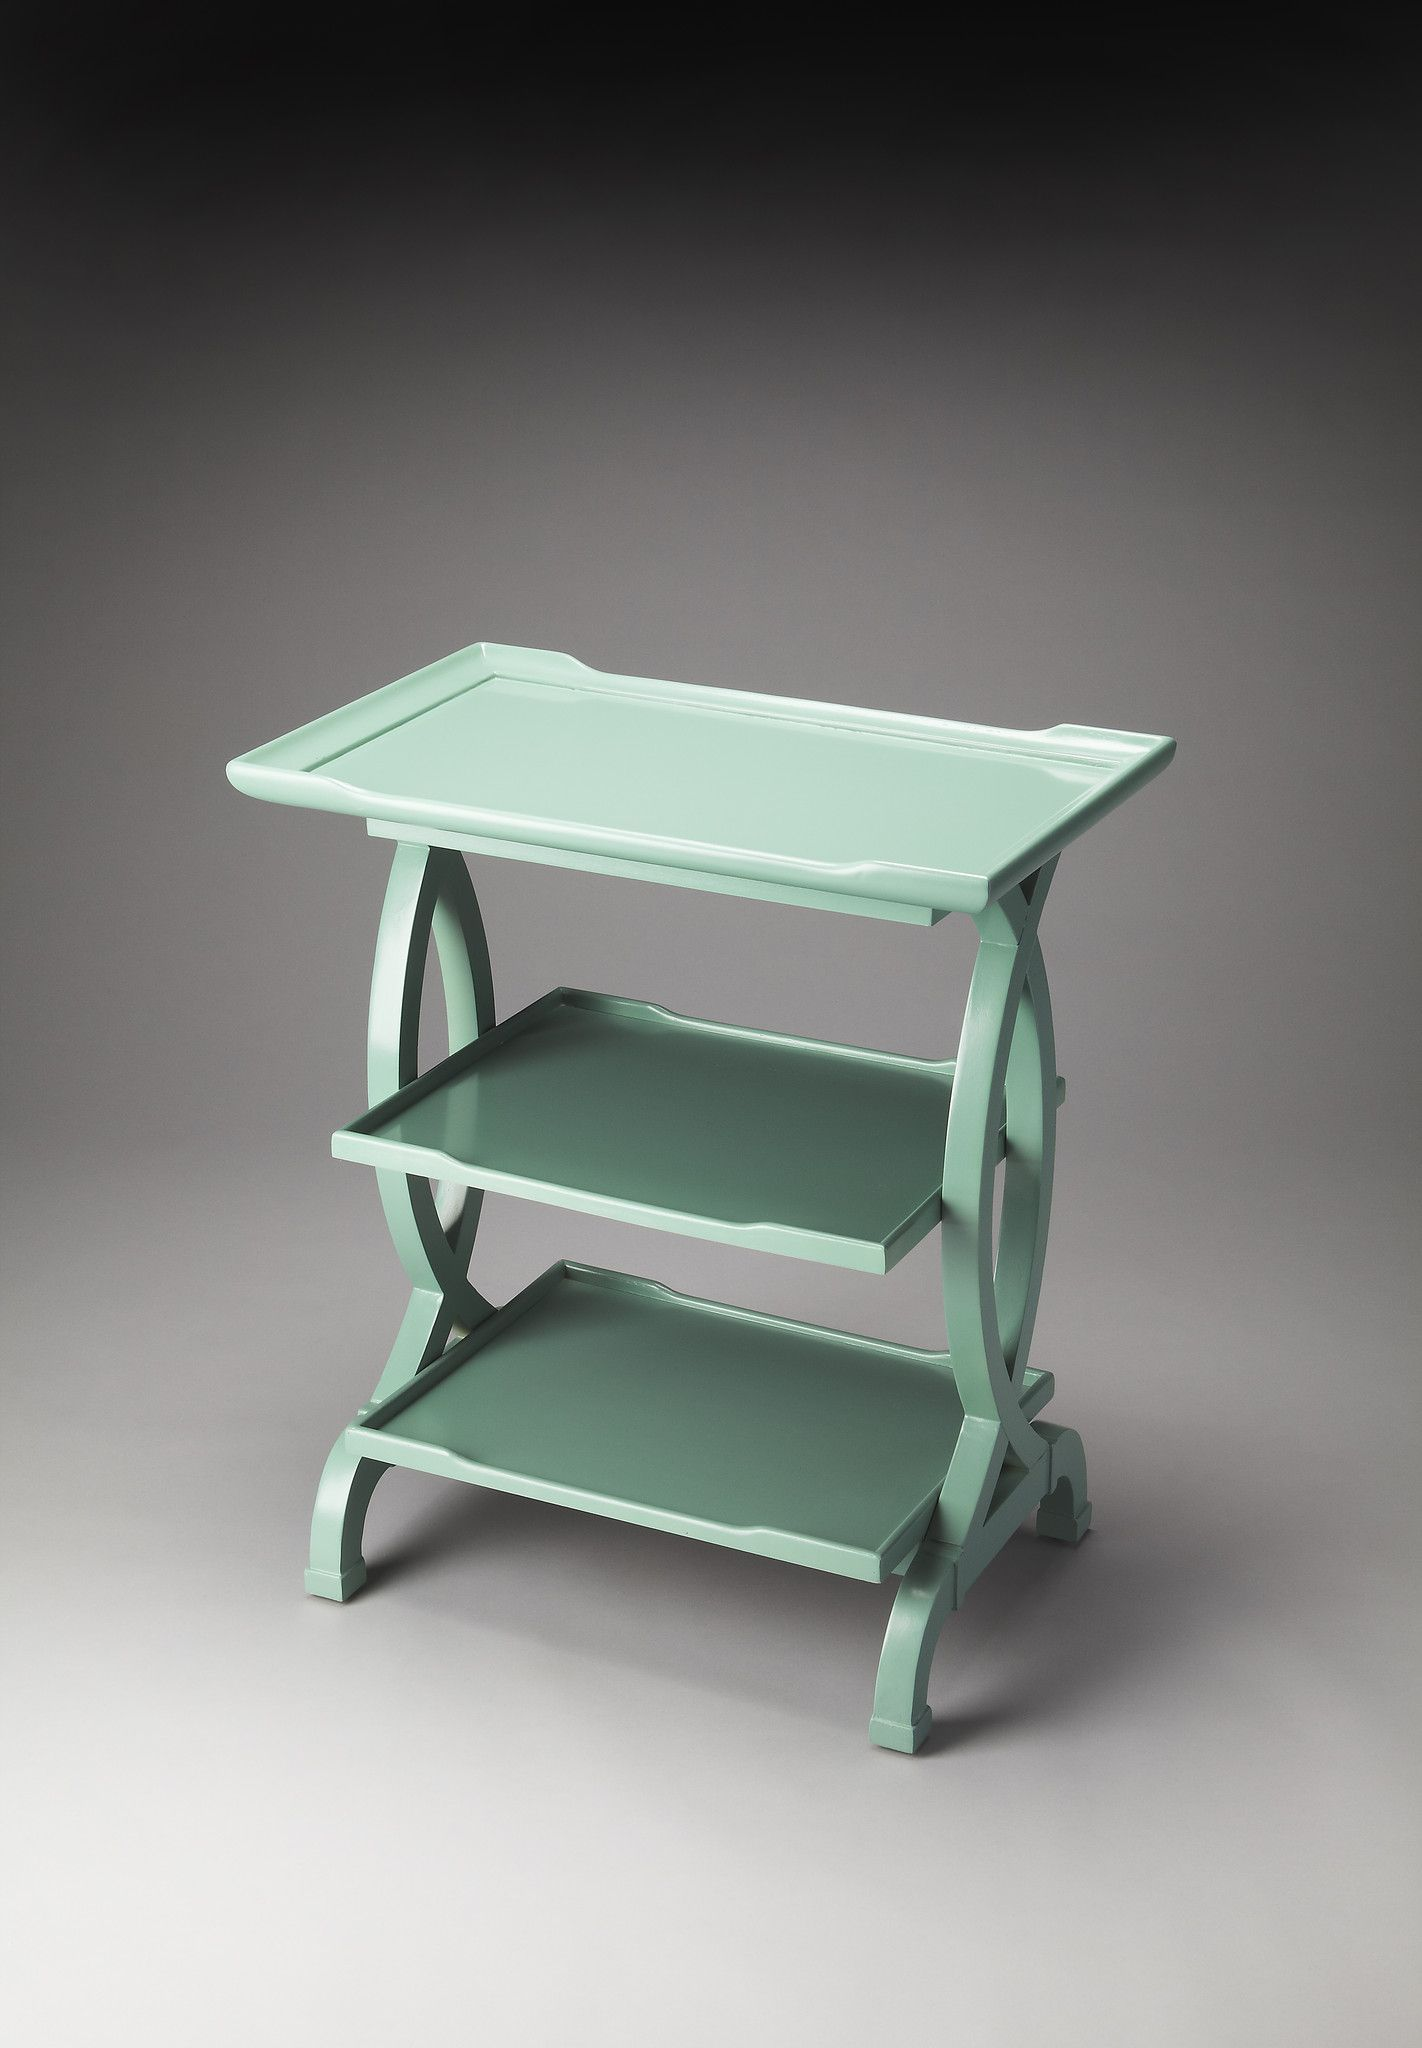 kimiko transitional rectangular side table green mint accent butler loft crsme tall nautical lamp desk legs dining with bench west elm glass floor rattan garden blue living room